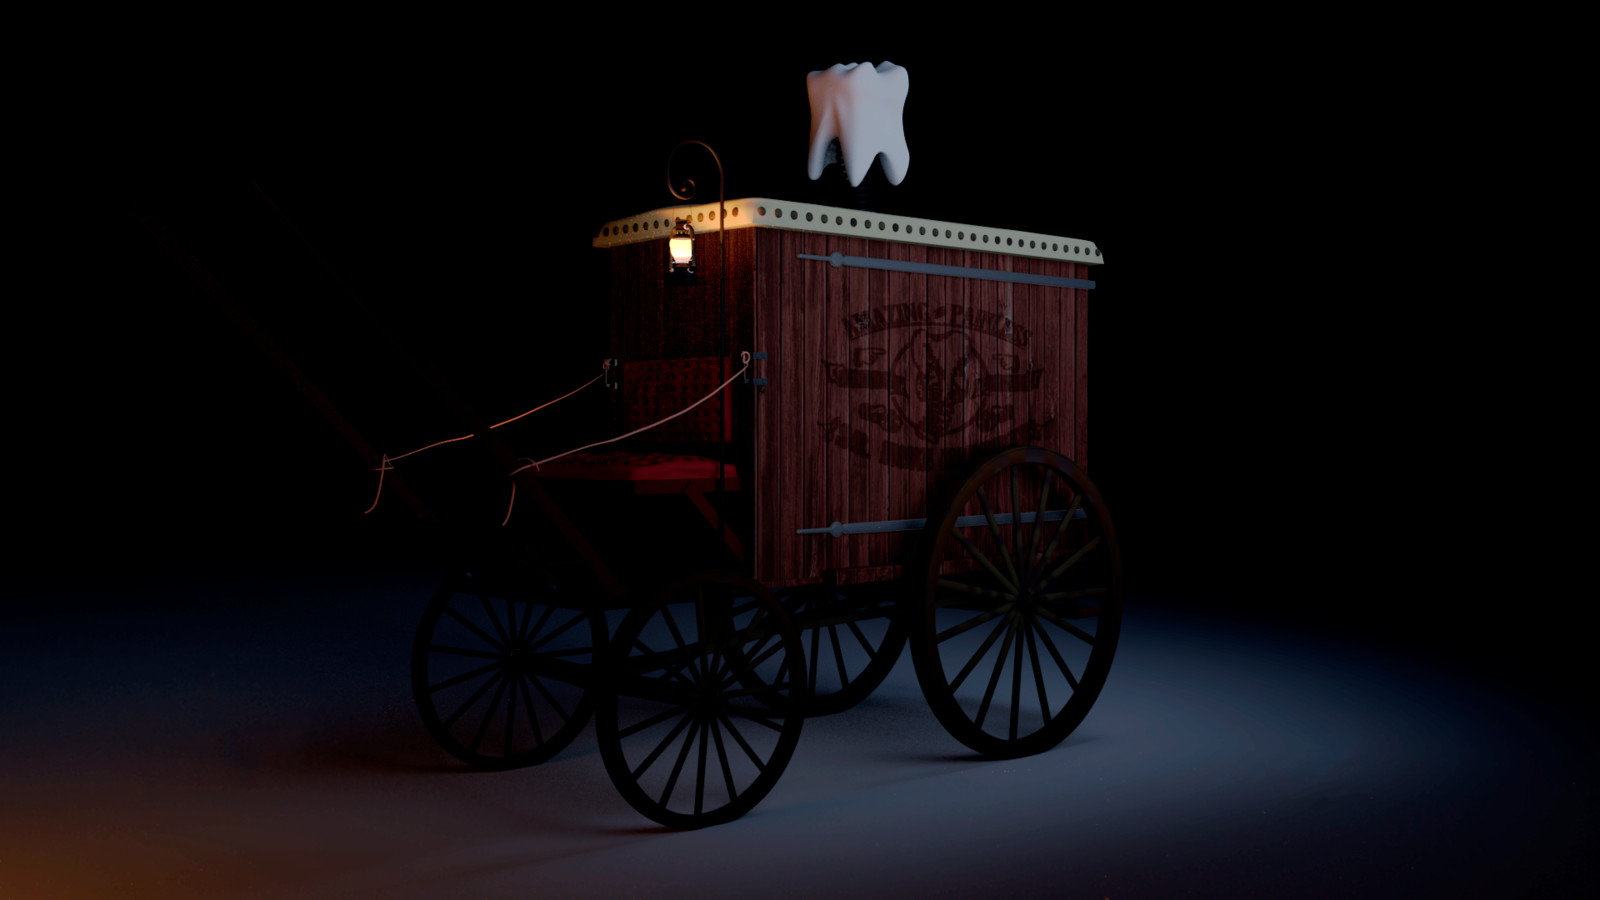 Dentist's wagon